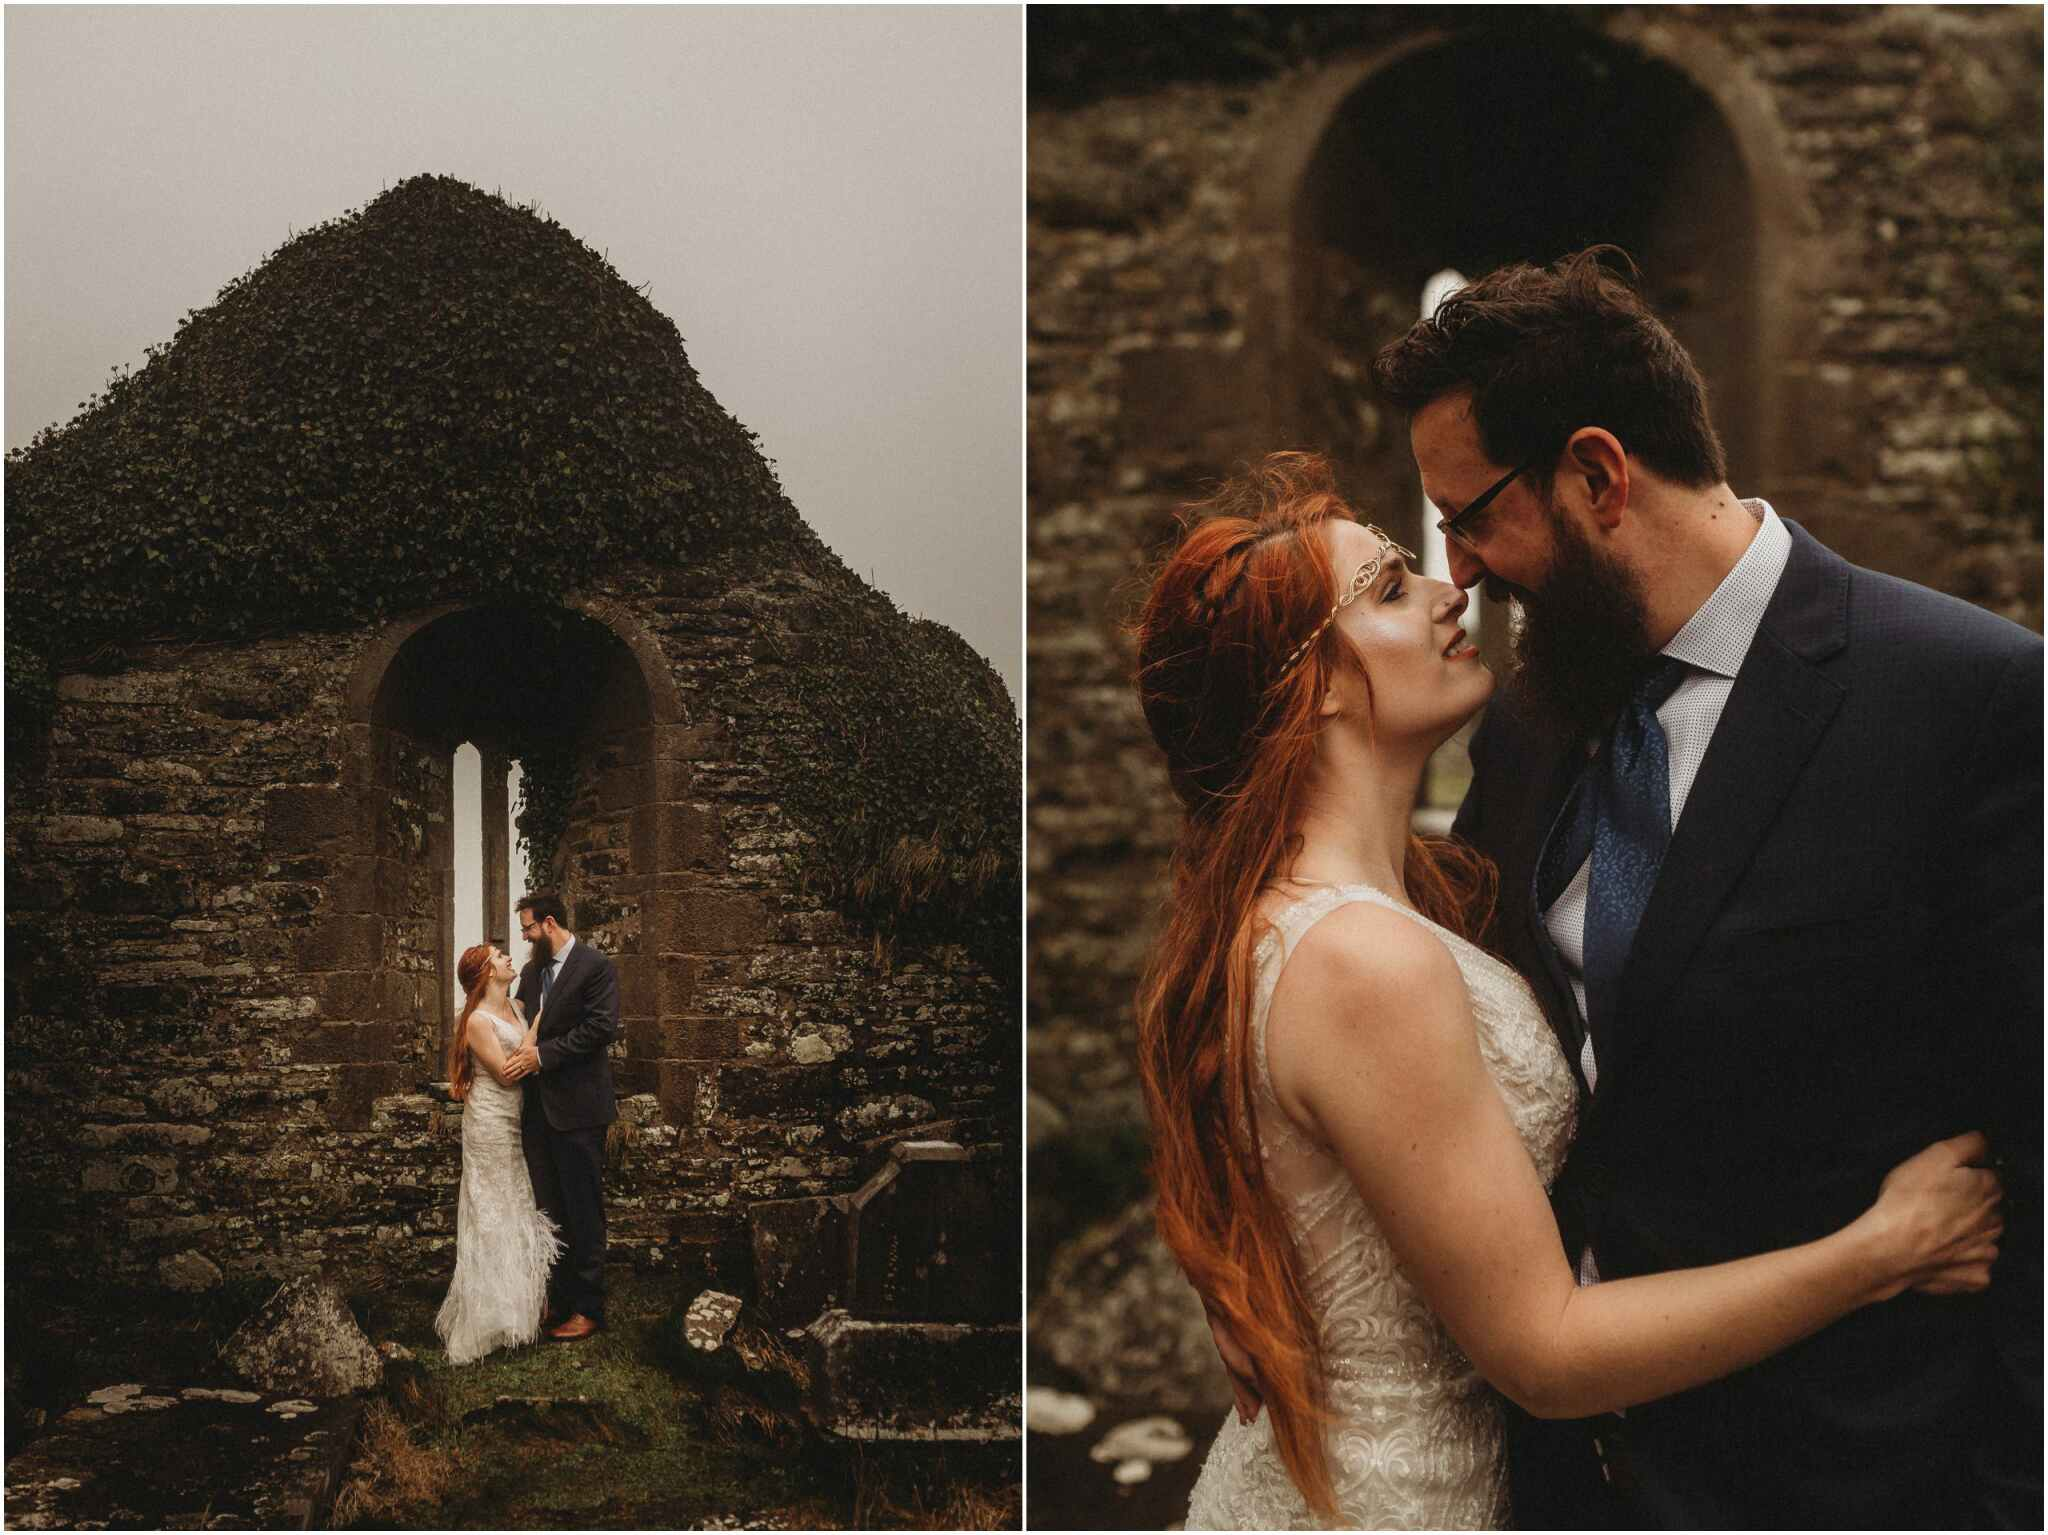 Red hair bride with beard groom at the cliffs of Moher Elopement